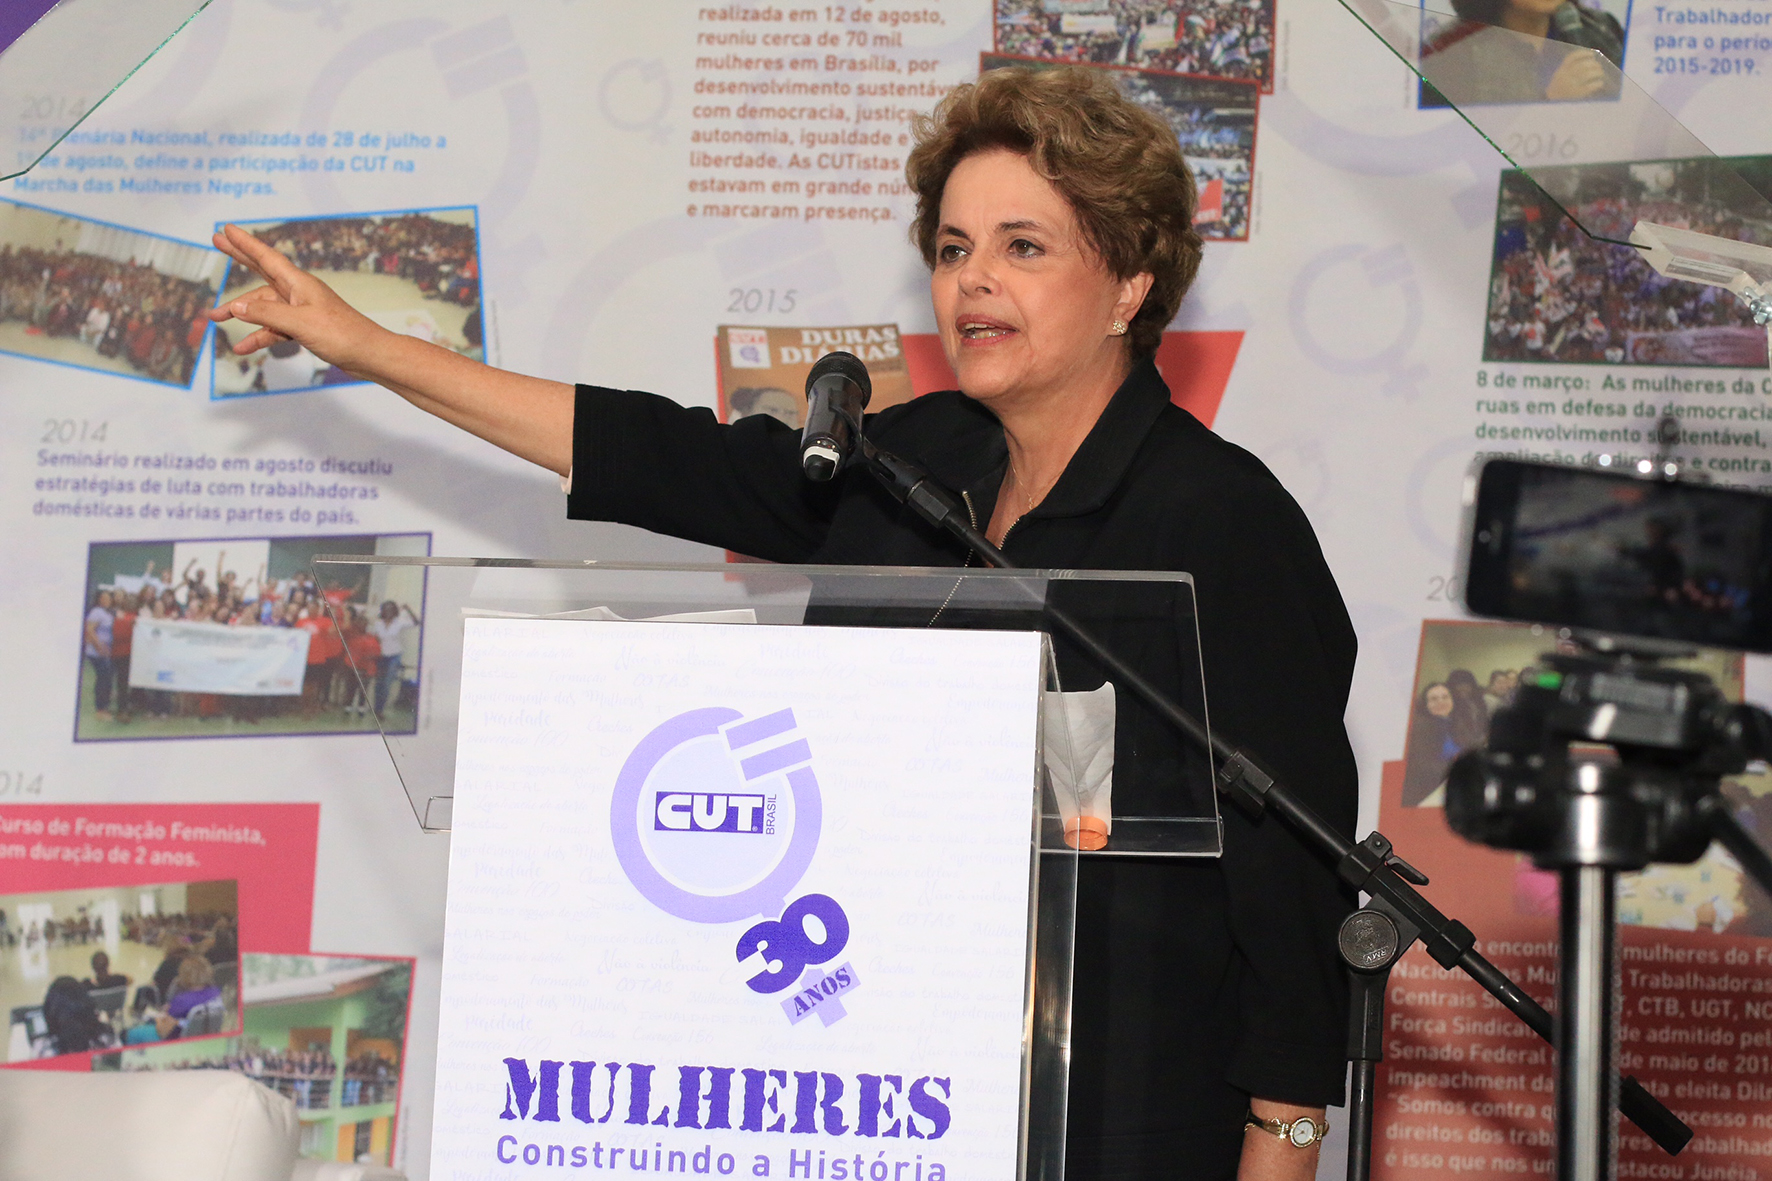 RP Dilma Rousseff Comemoracoes 30 Anos CUT Mulher Sao Paulo 00111302016